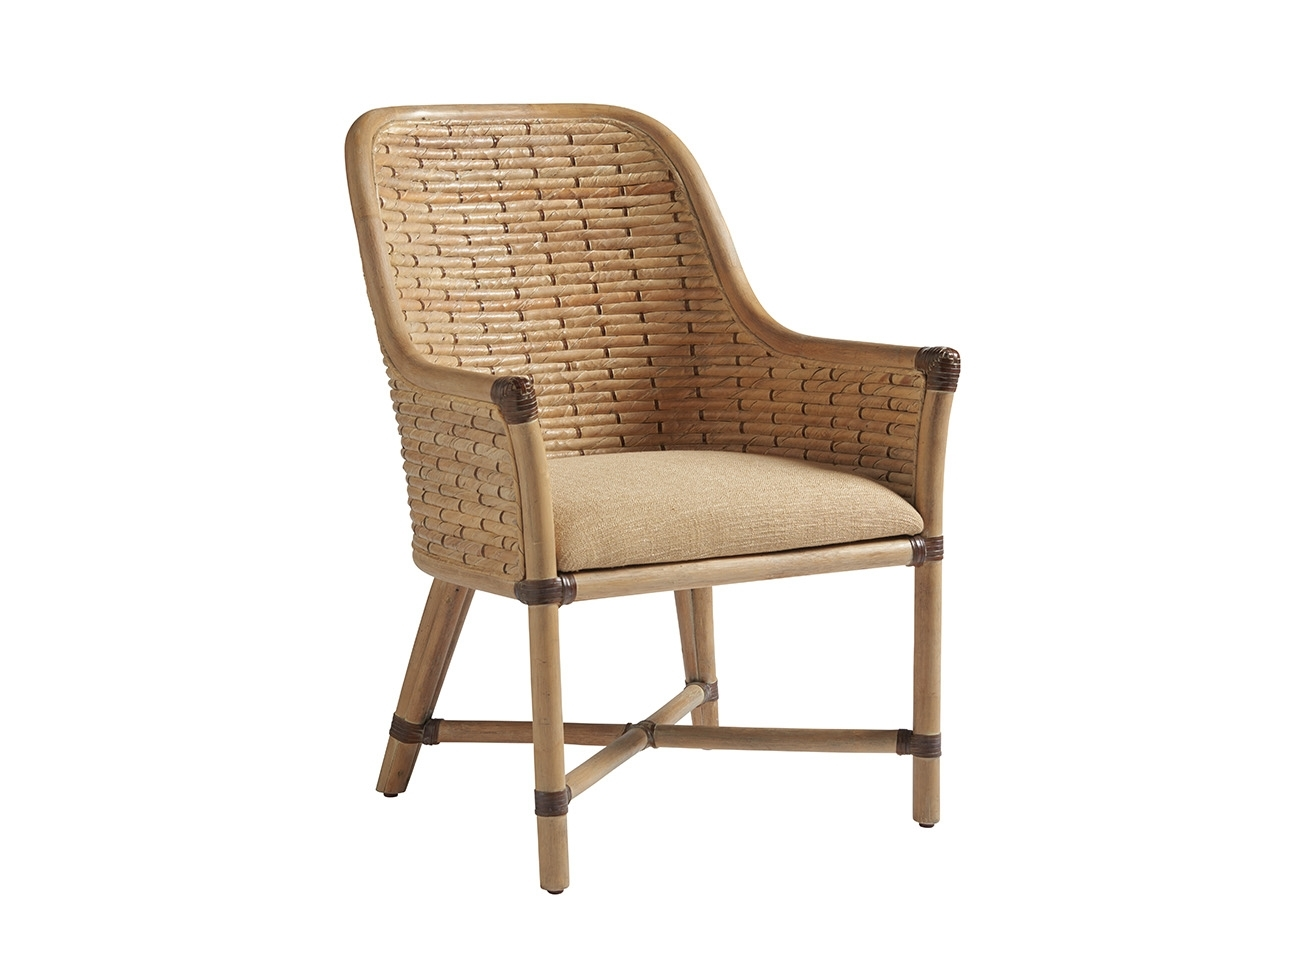 Most Recent Candice Ii Slat Back Host Chairs Inside Product List (View 12 of 20)